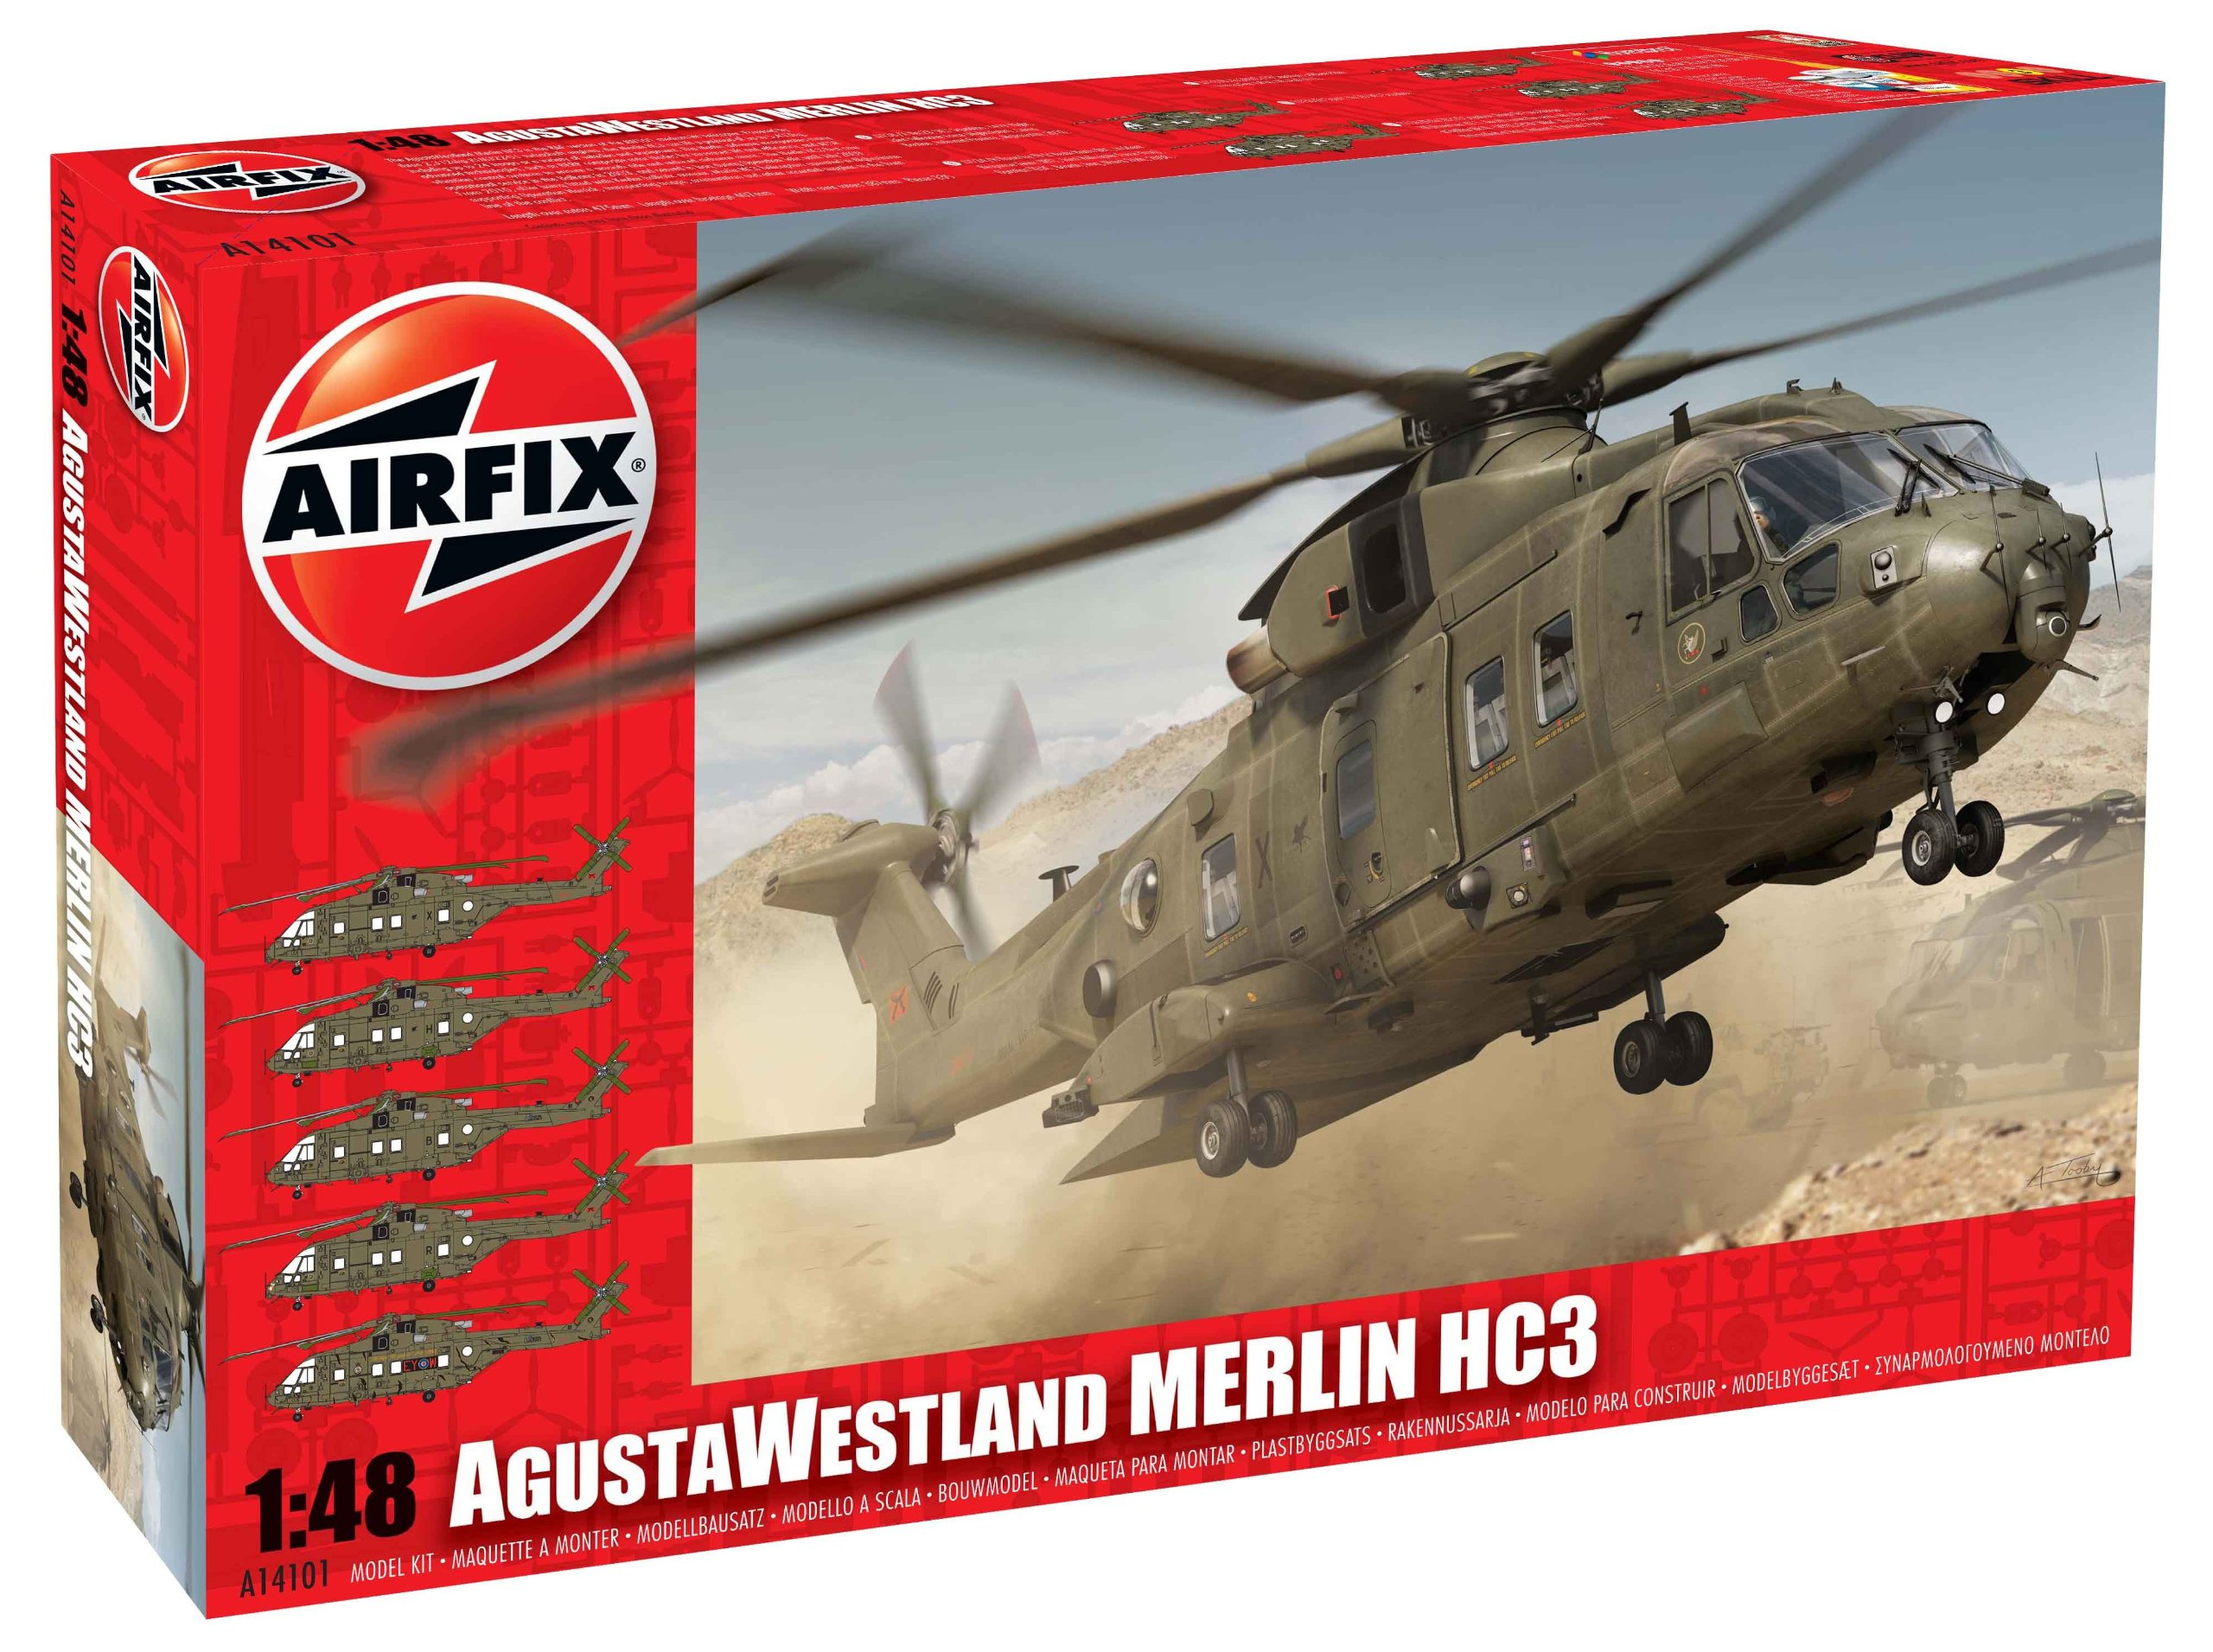 Airfix Augusta Westland Melin HC3 Helicopter Building Kit, 1:48 Scale